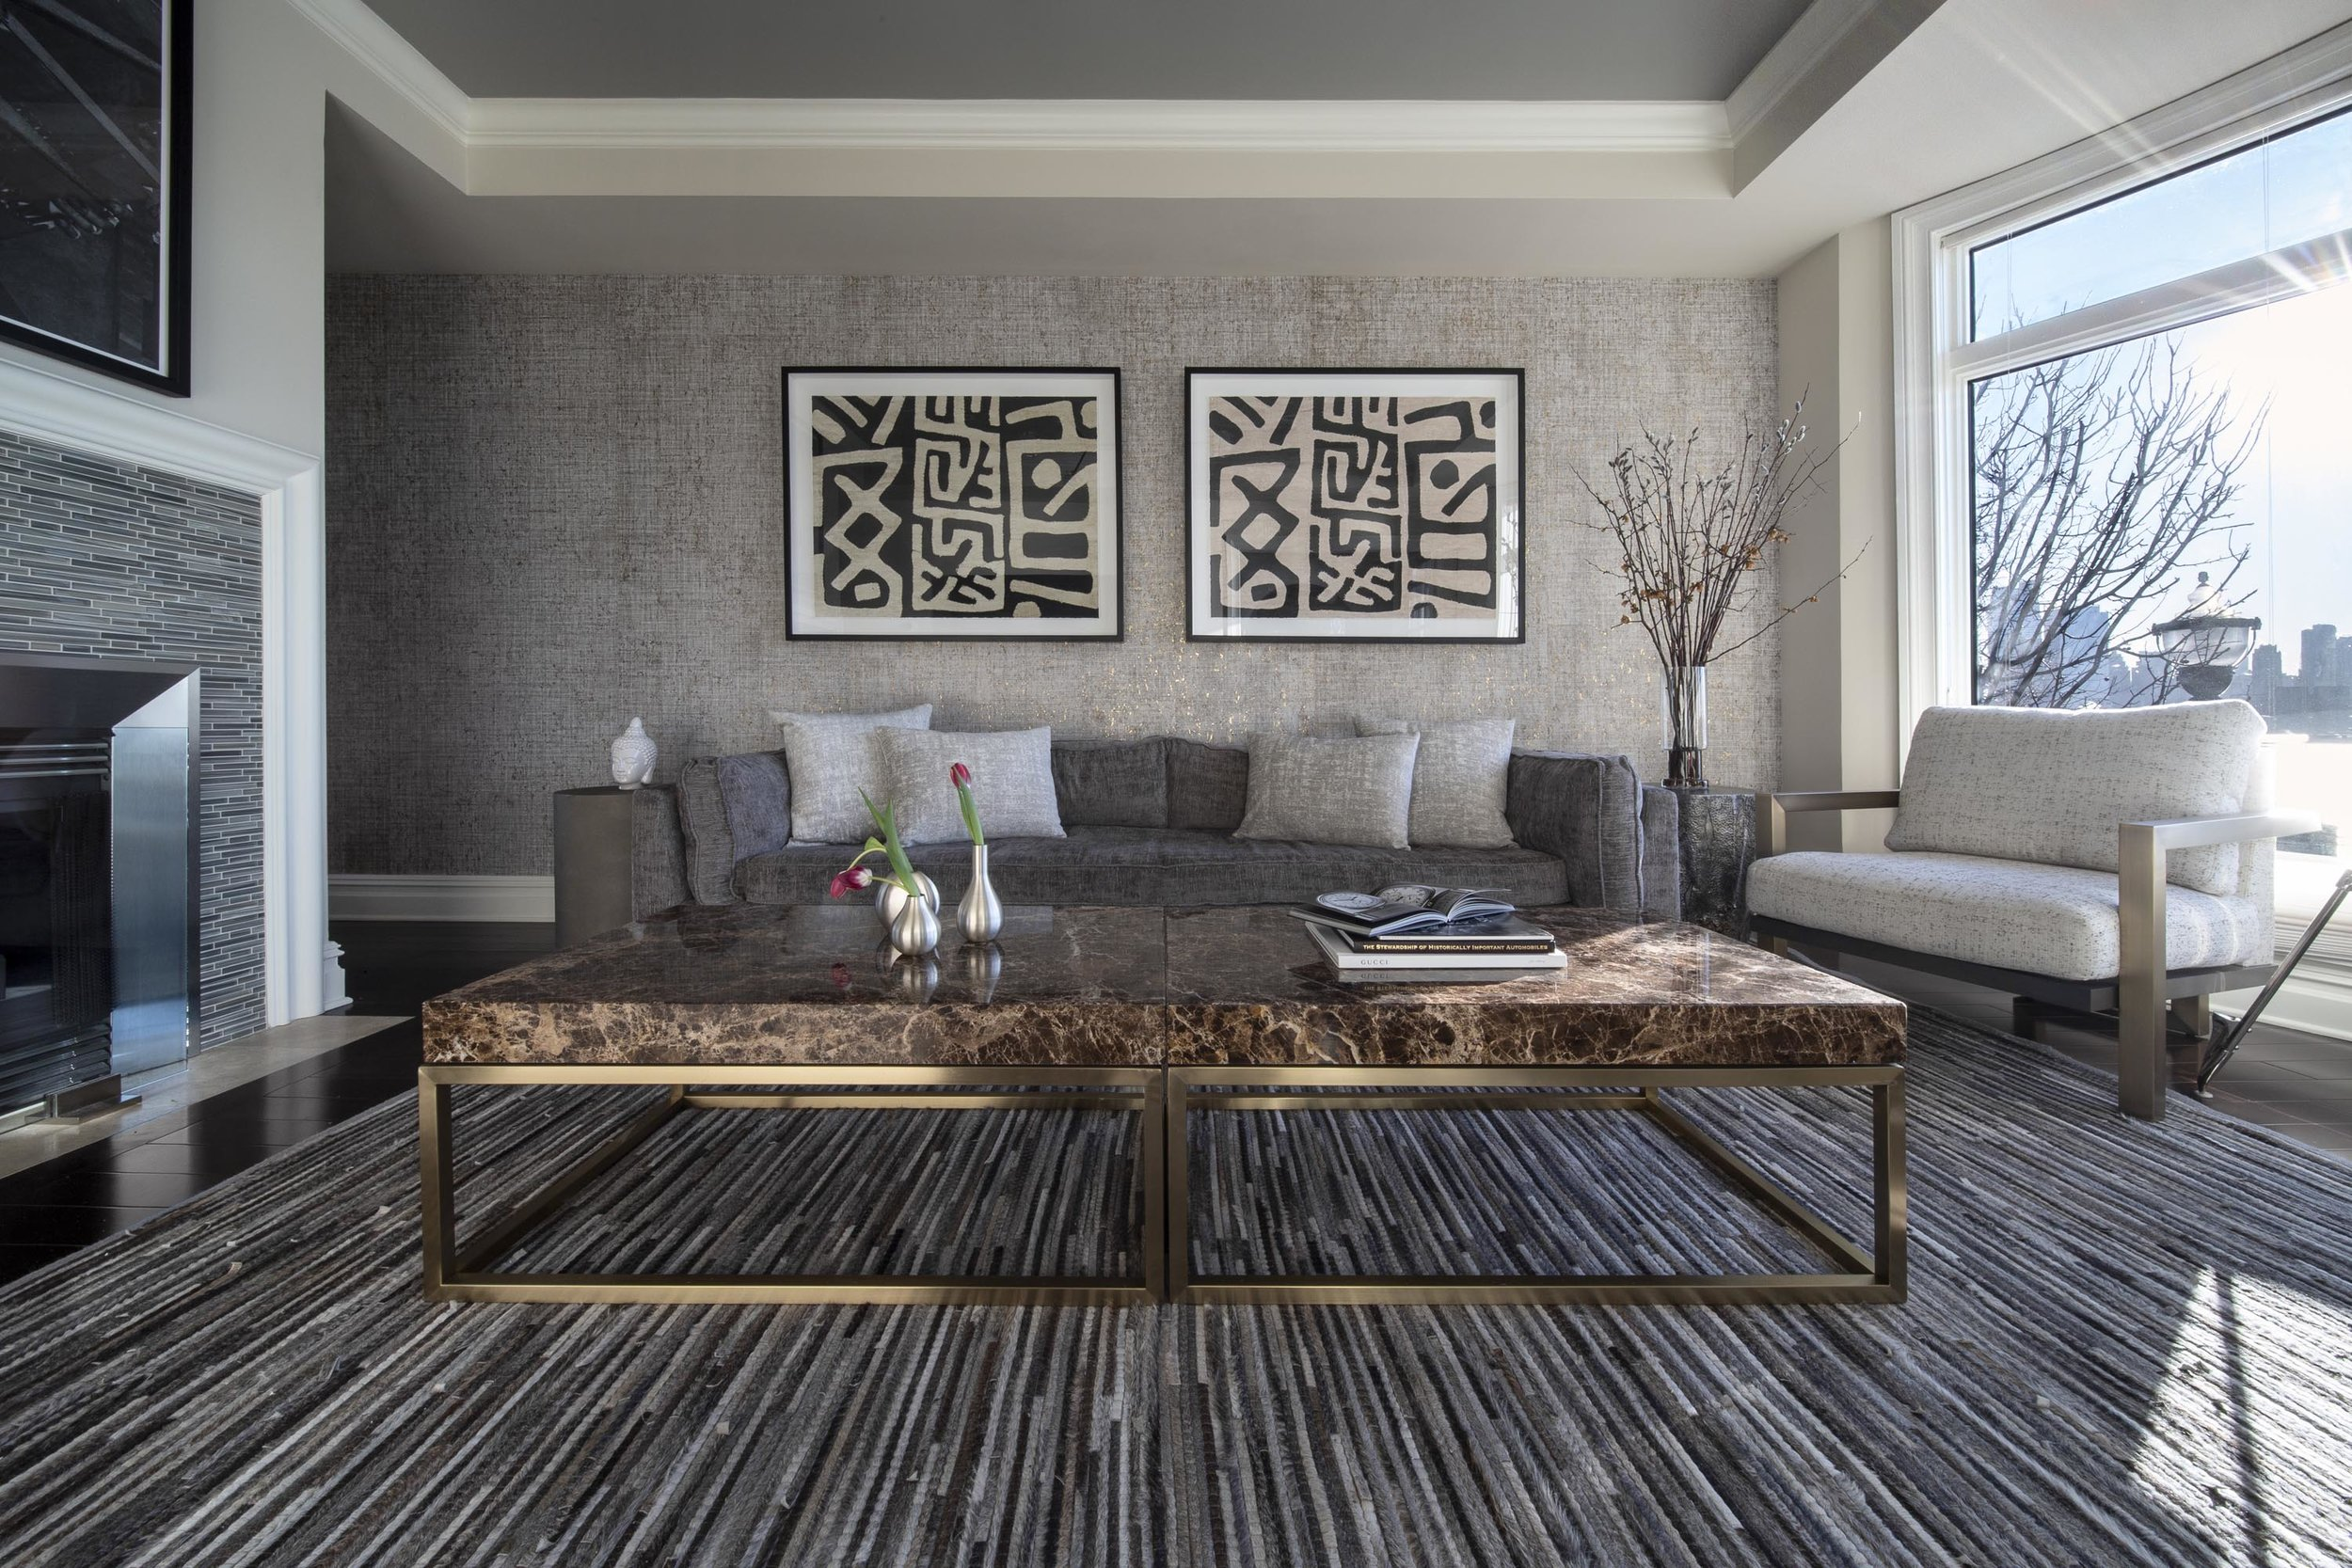 Living room with modern wallpaper and carpet, ceramic top center table, sofa and artwork on the wall